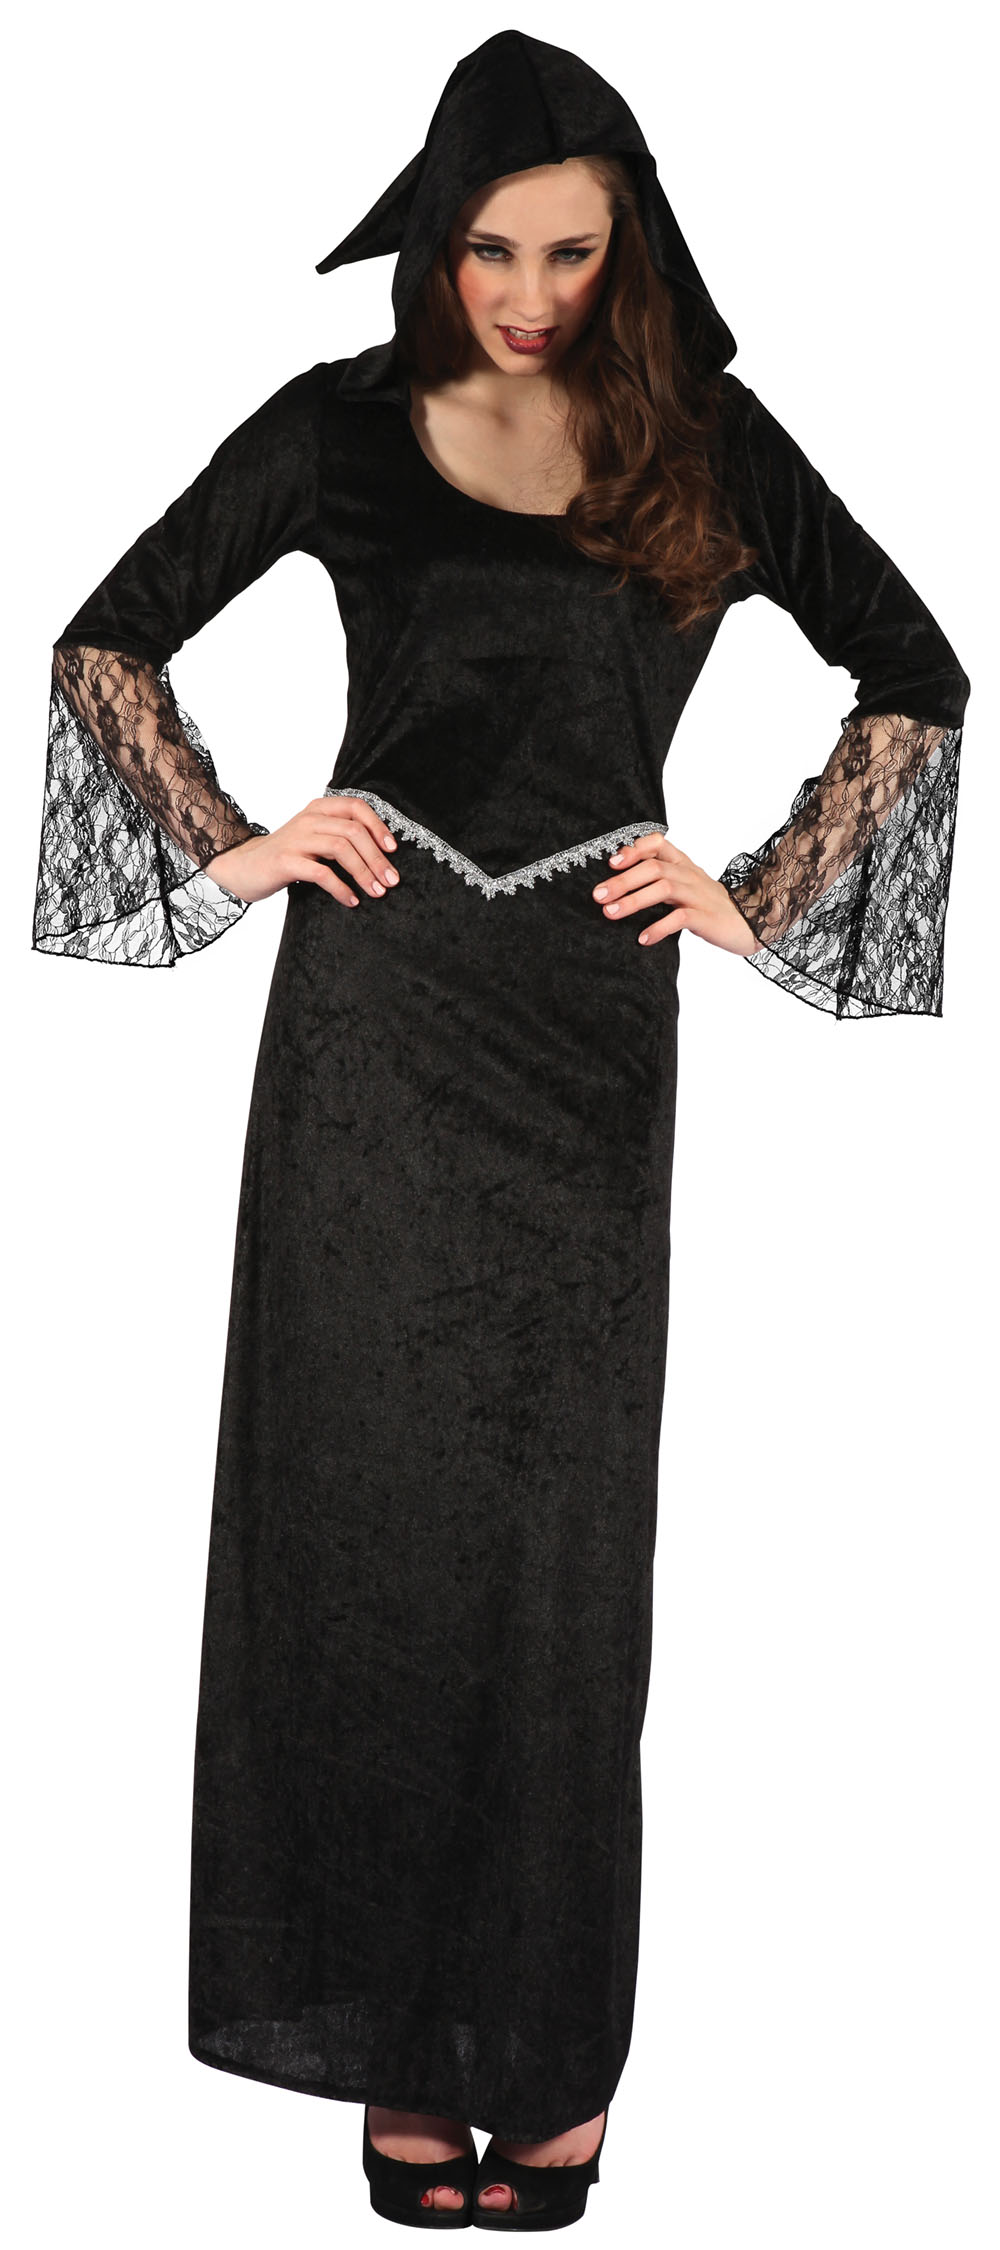 Ladies Black Widow Gothic Fancy Dress Costume Scary Halloween Outfit UK 10-14